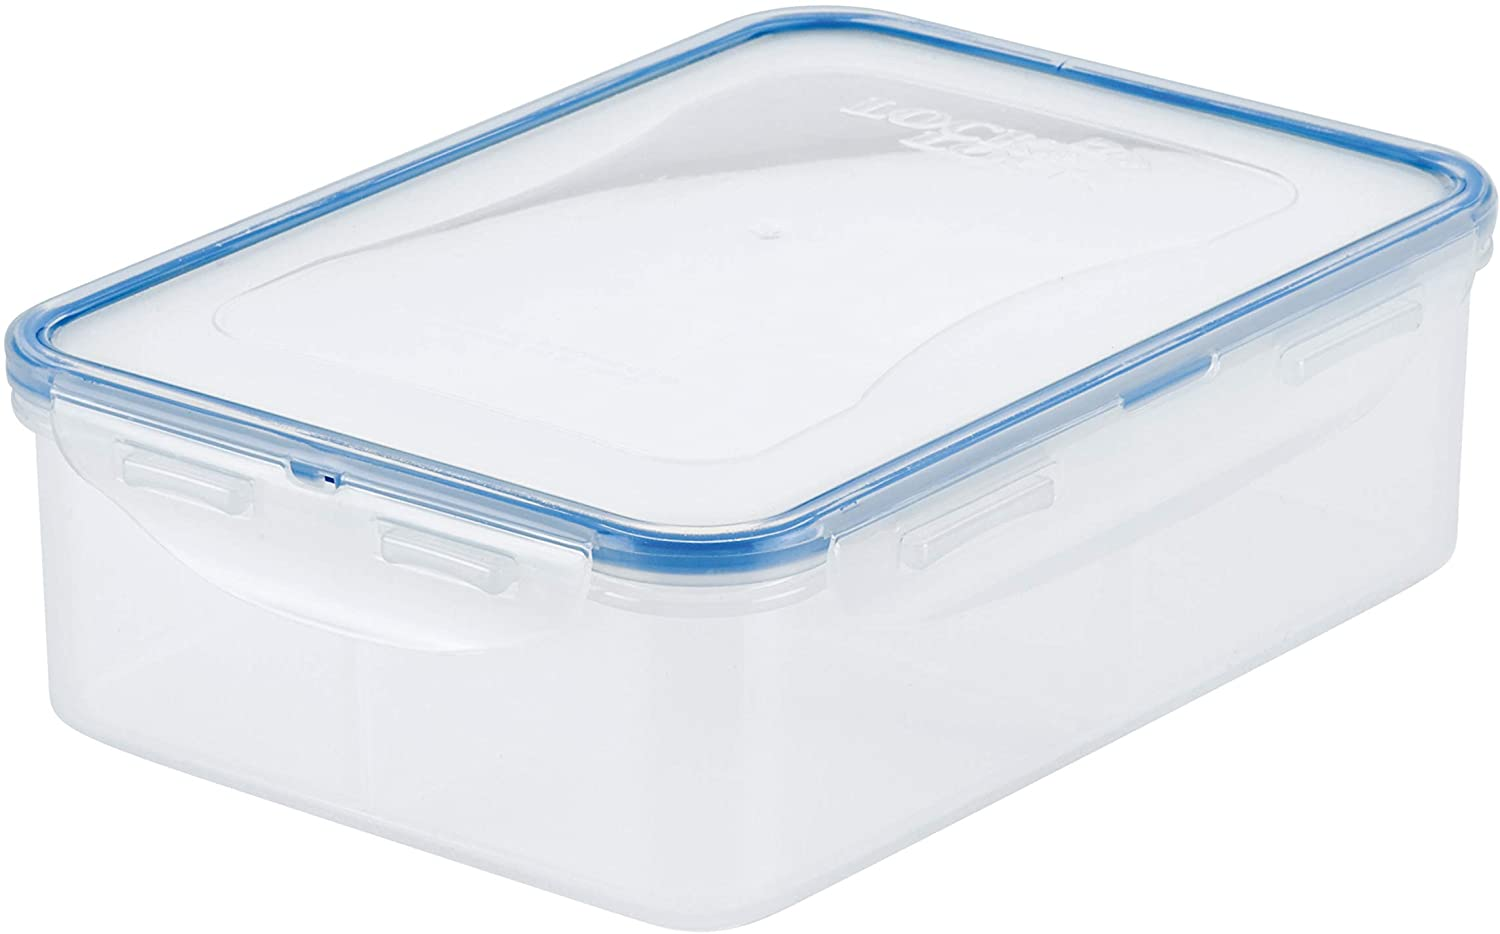 LOCK & LOCK Easy Essentials Food Storage lids/Airtight containers, BPA Free, Rectangle-54 oz-for Snacks (4 Section), Clear